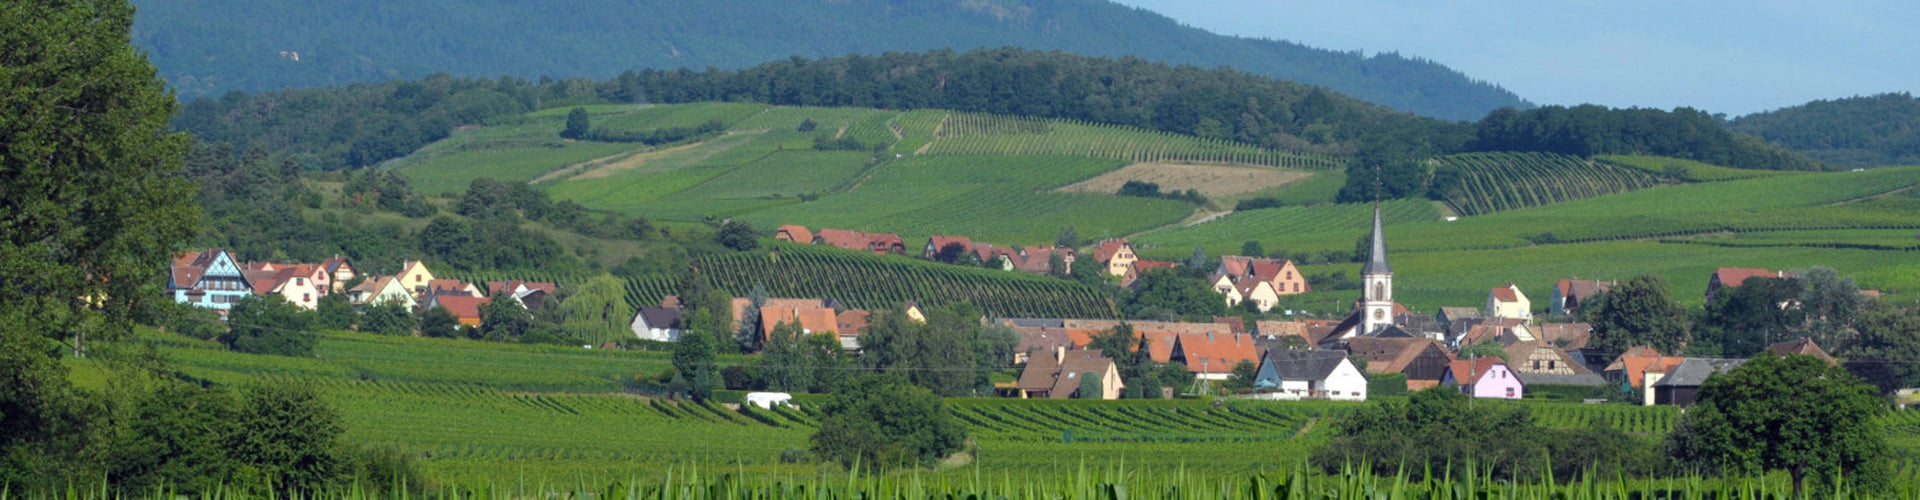 Vineyards in Rorschwihr, Alsace